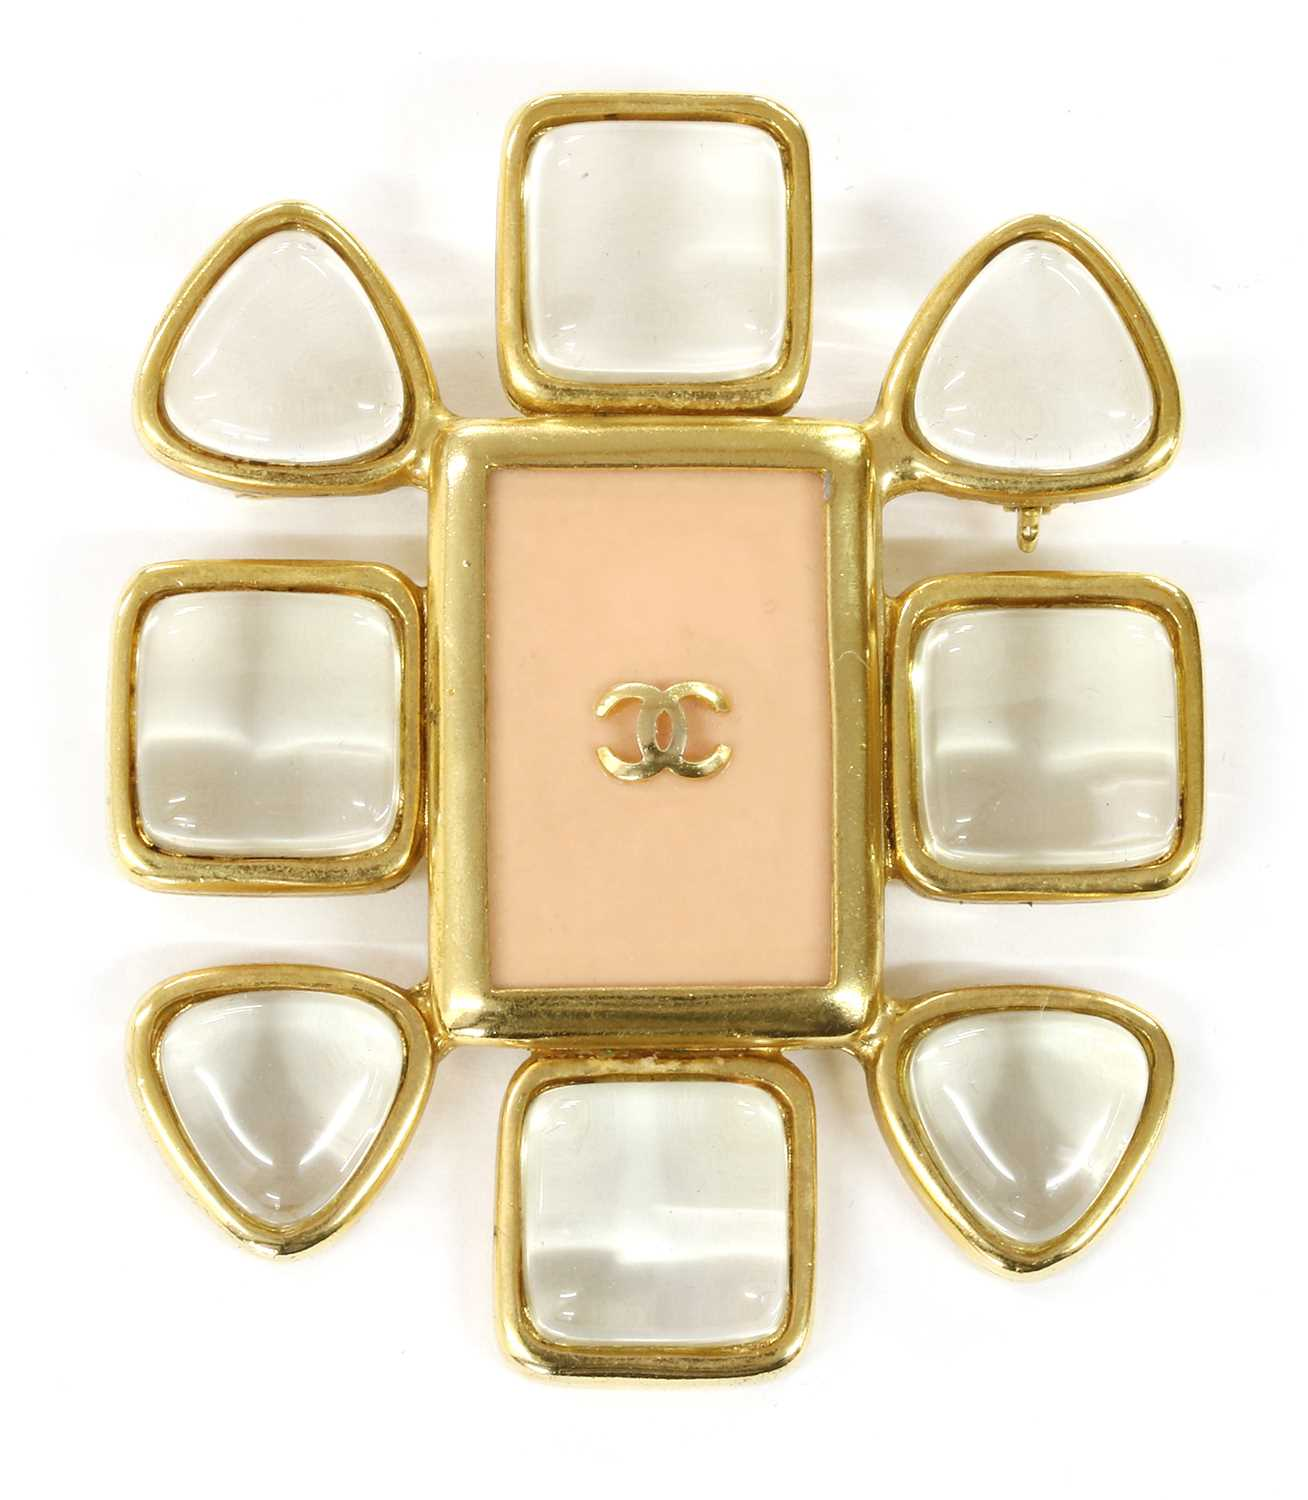 A Chanel gold-plated brooch,